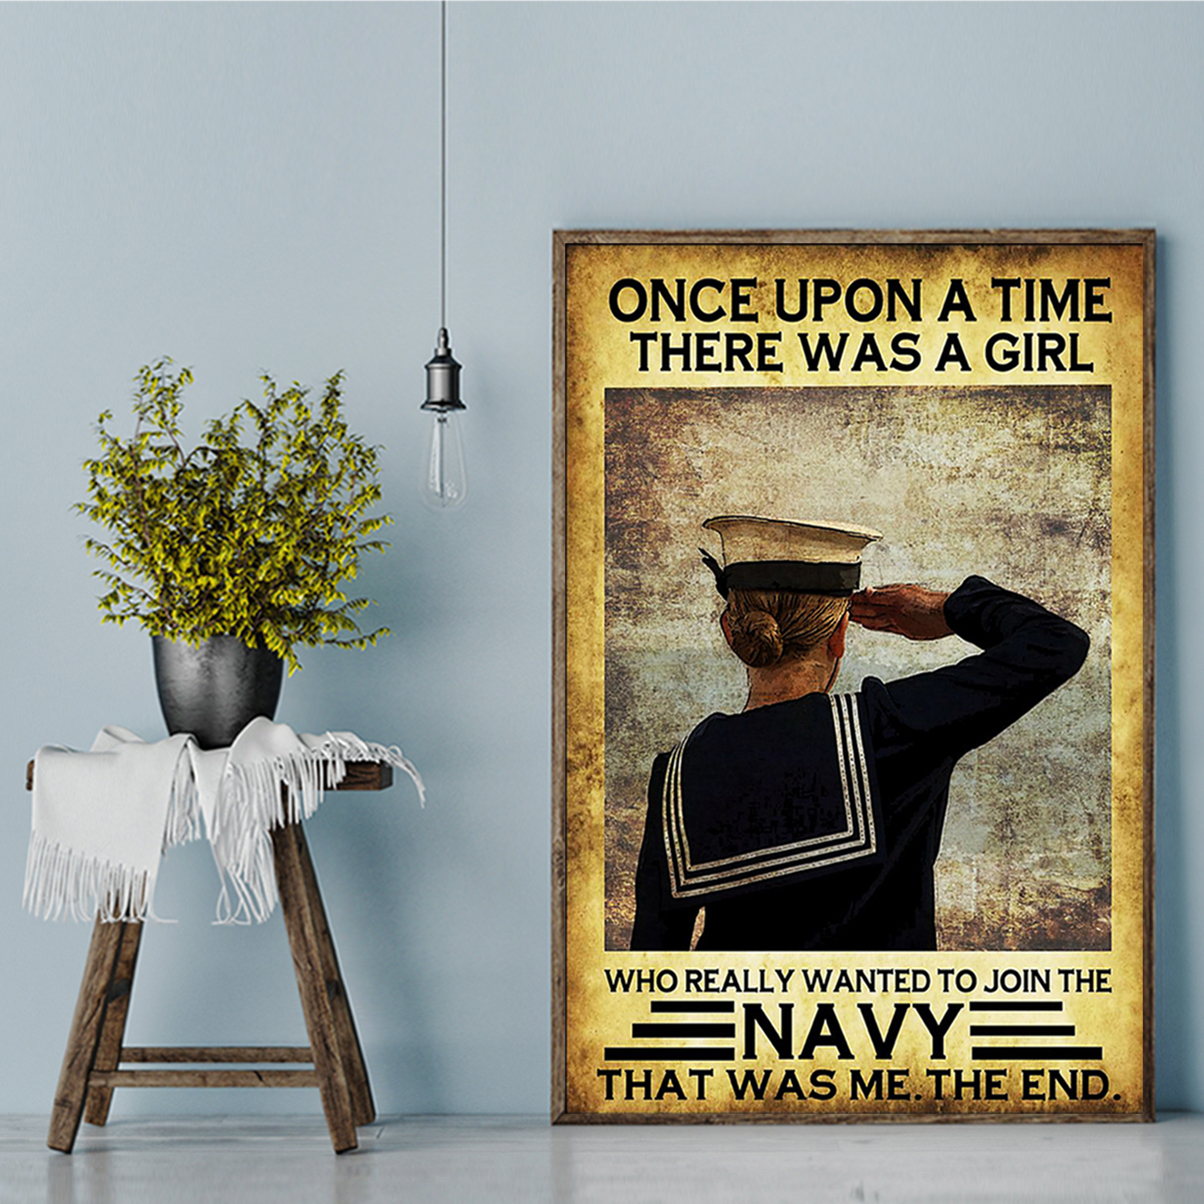 Once upon a time there was a girl who really wanted to join the navy poster A3